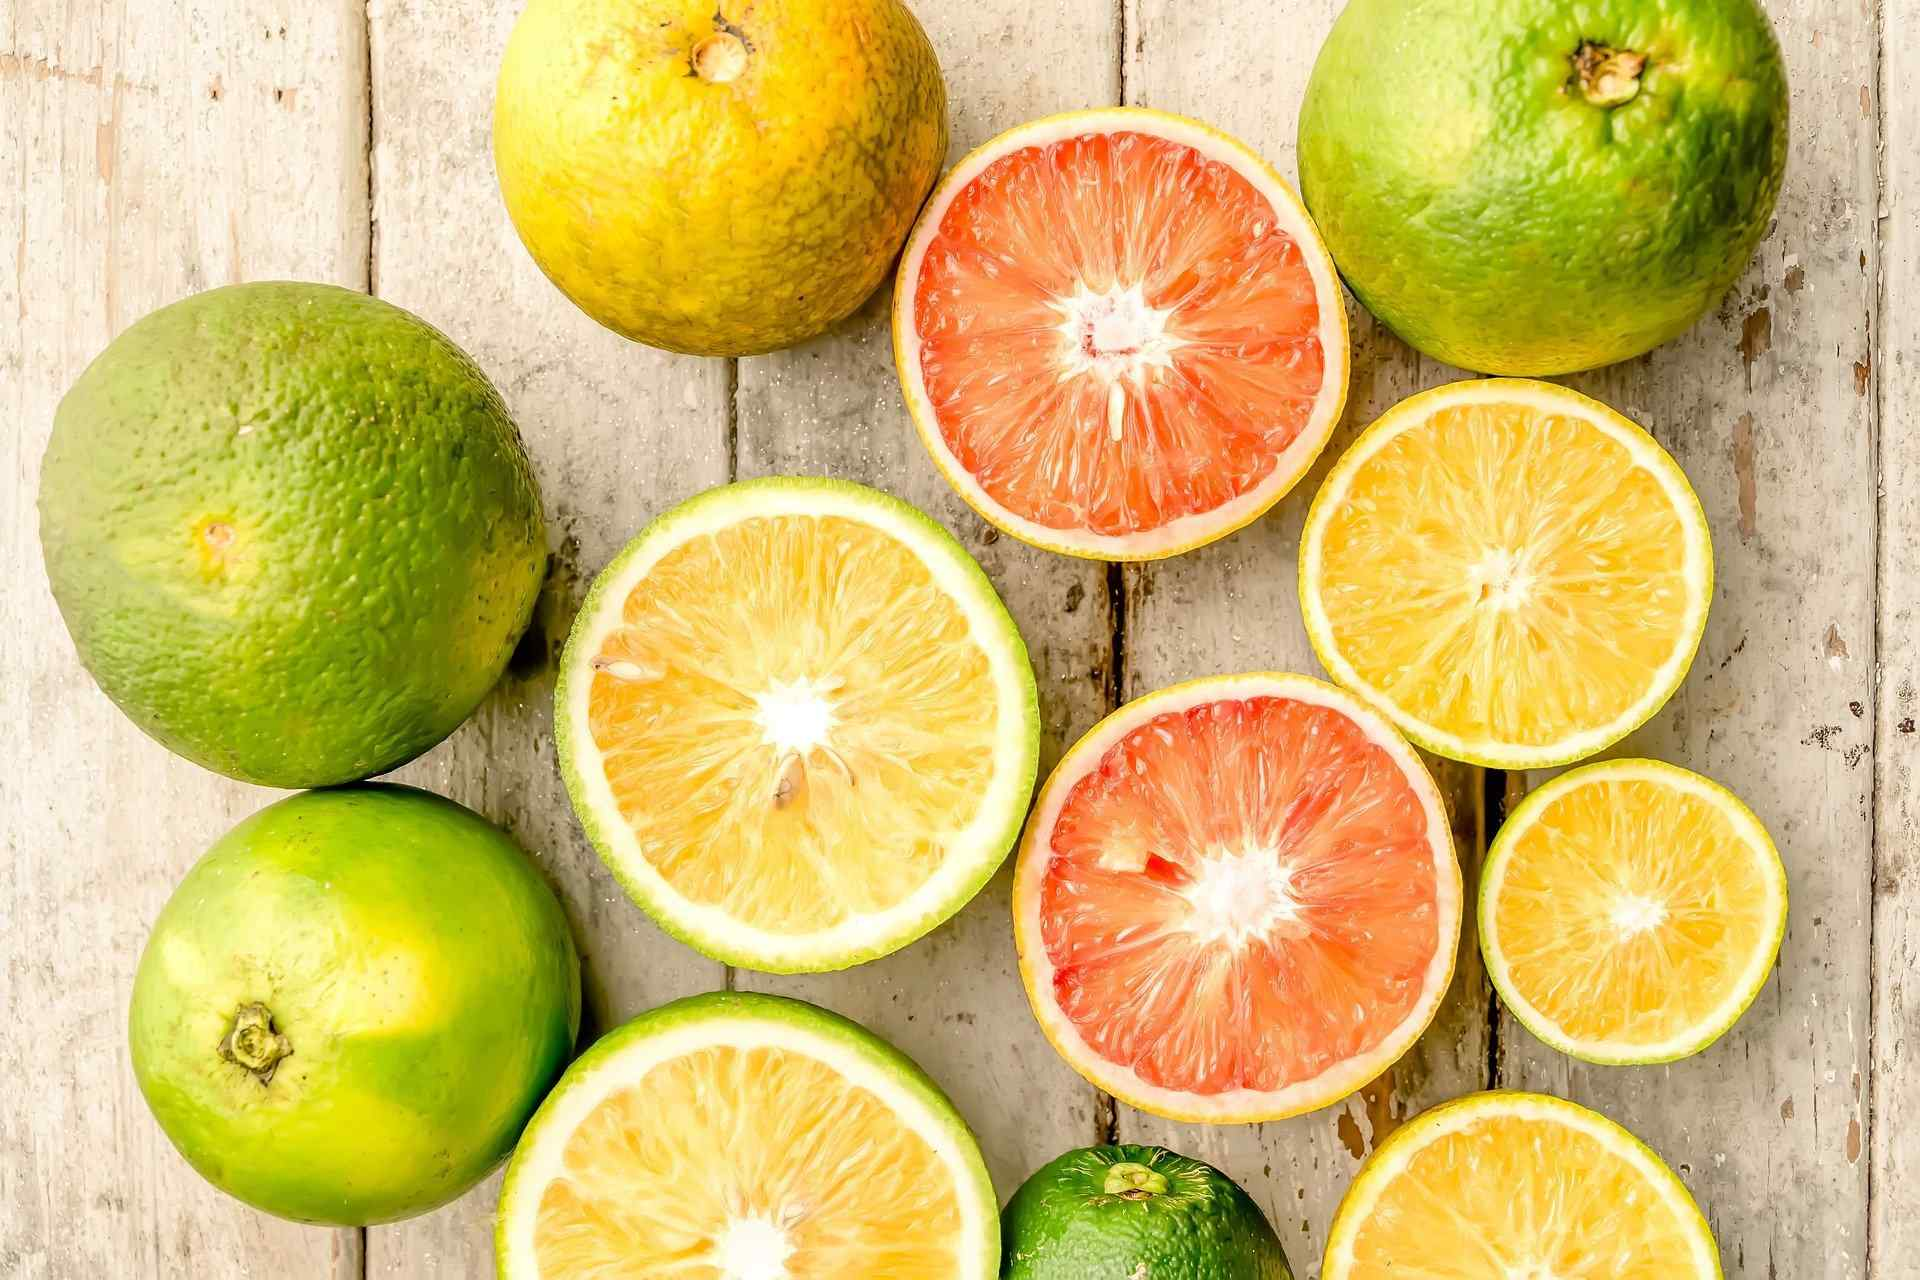 10 Vitamin C Enriched Fruits And Vegetables To Boost Your Immunity